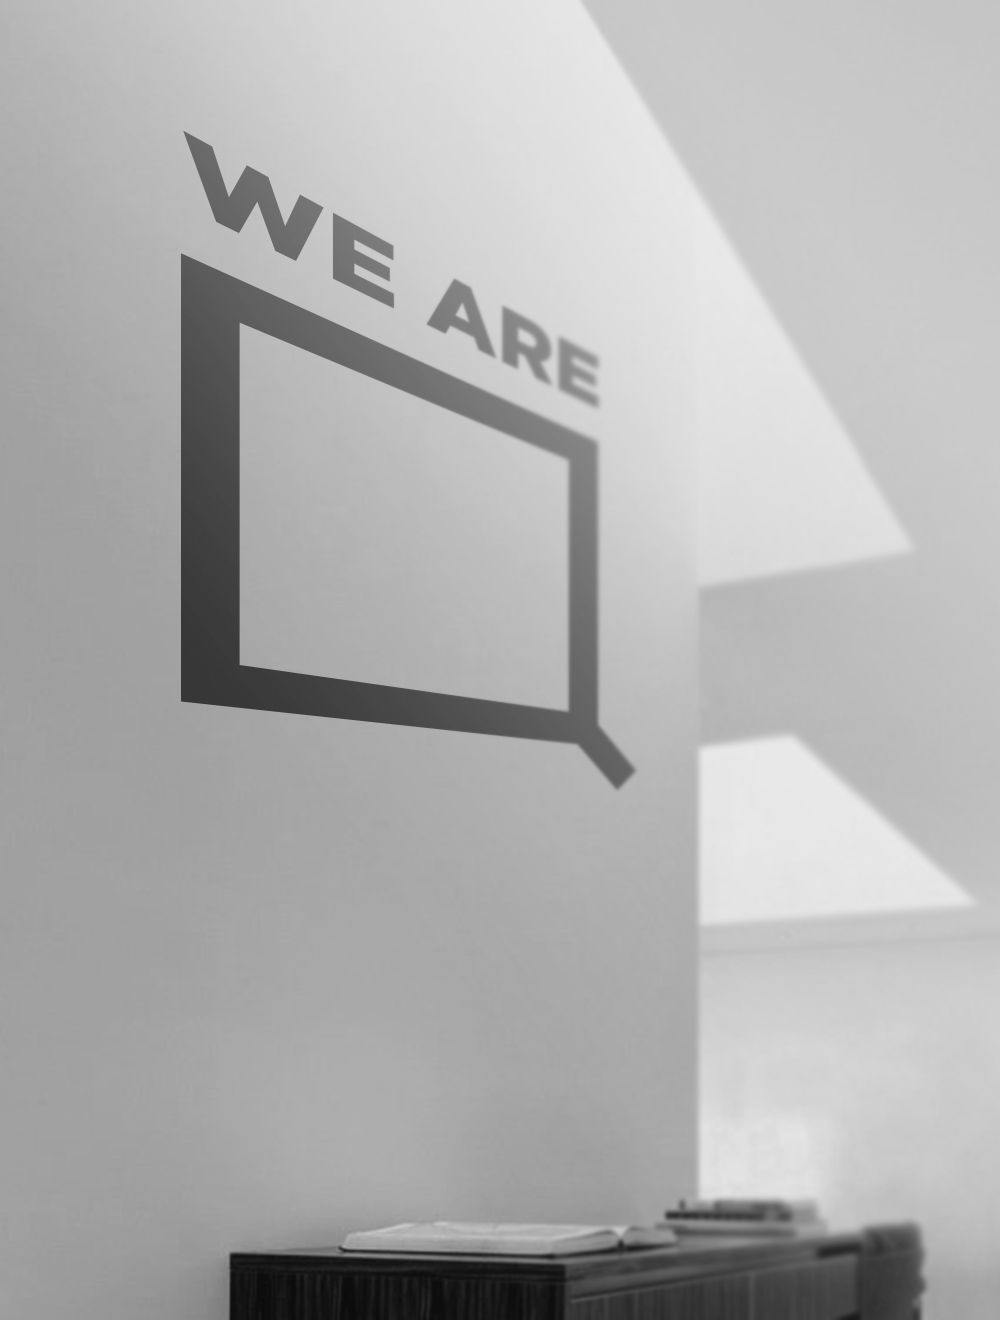 We Are SQUARED Wall Vinyl